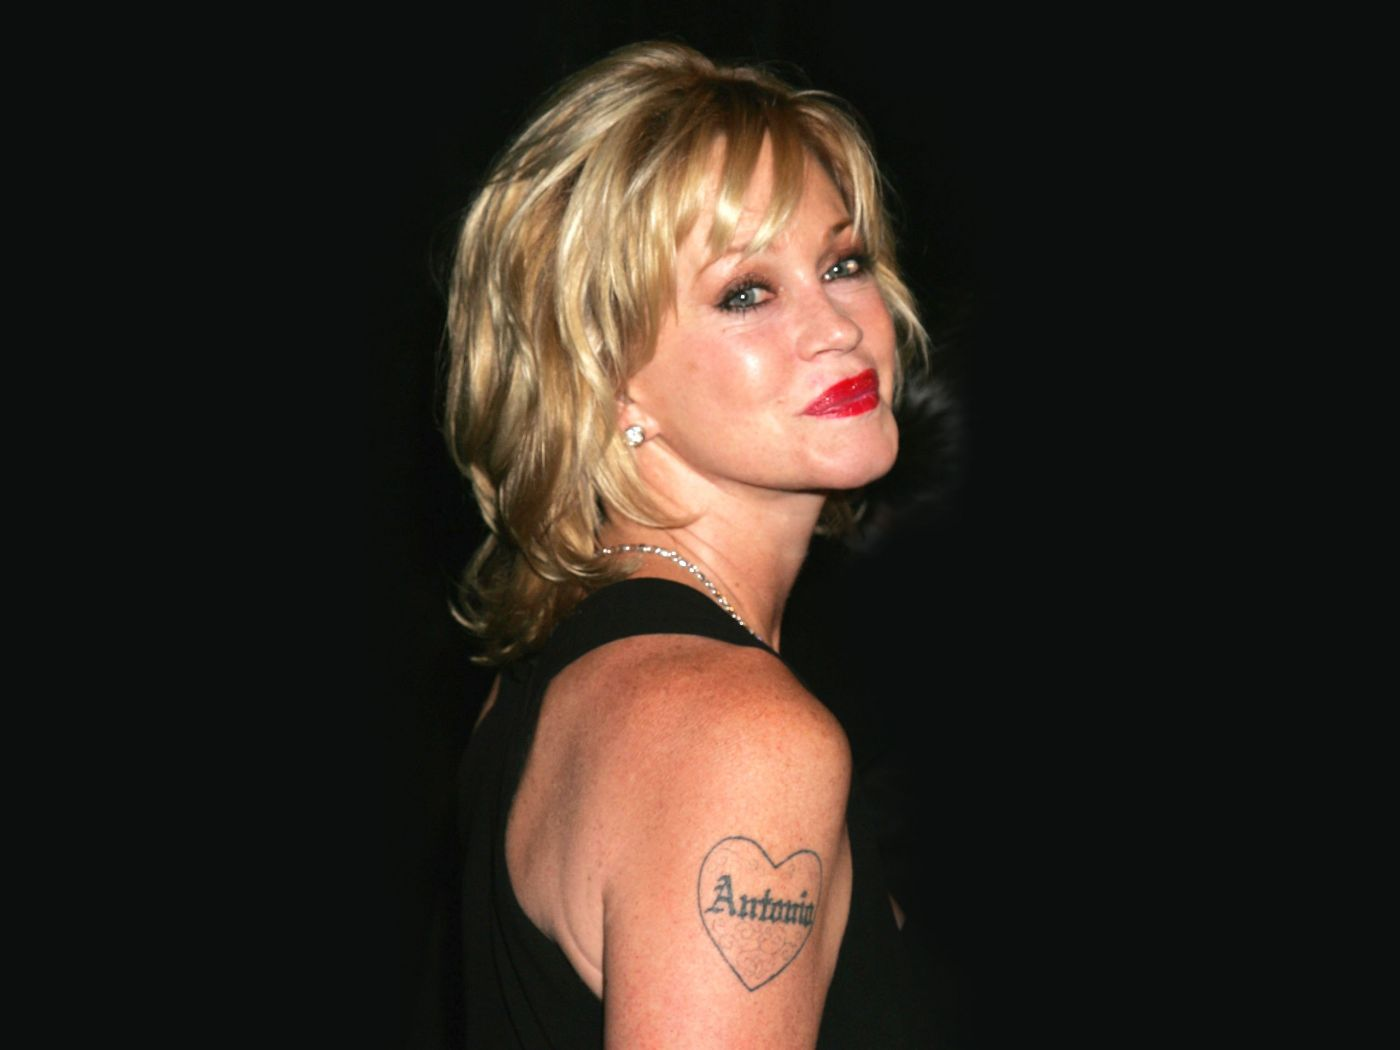 Melanie Griffith Wallpaper #115281 - Resolution 1400x1050 px